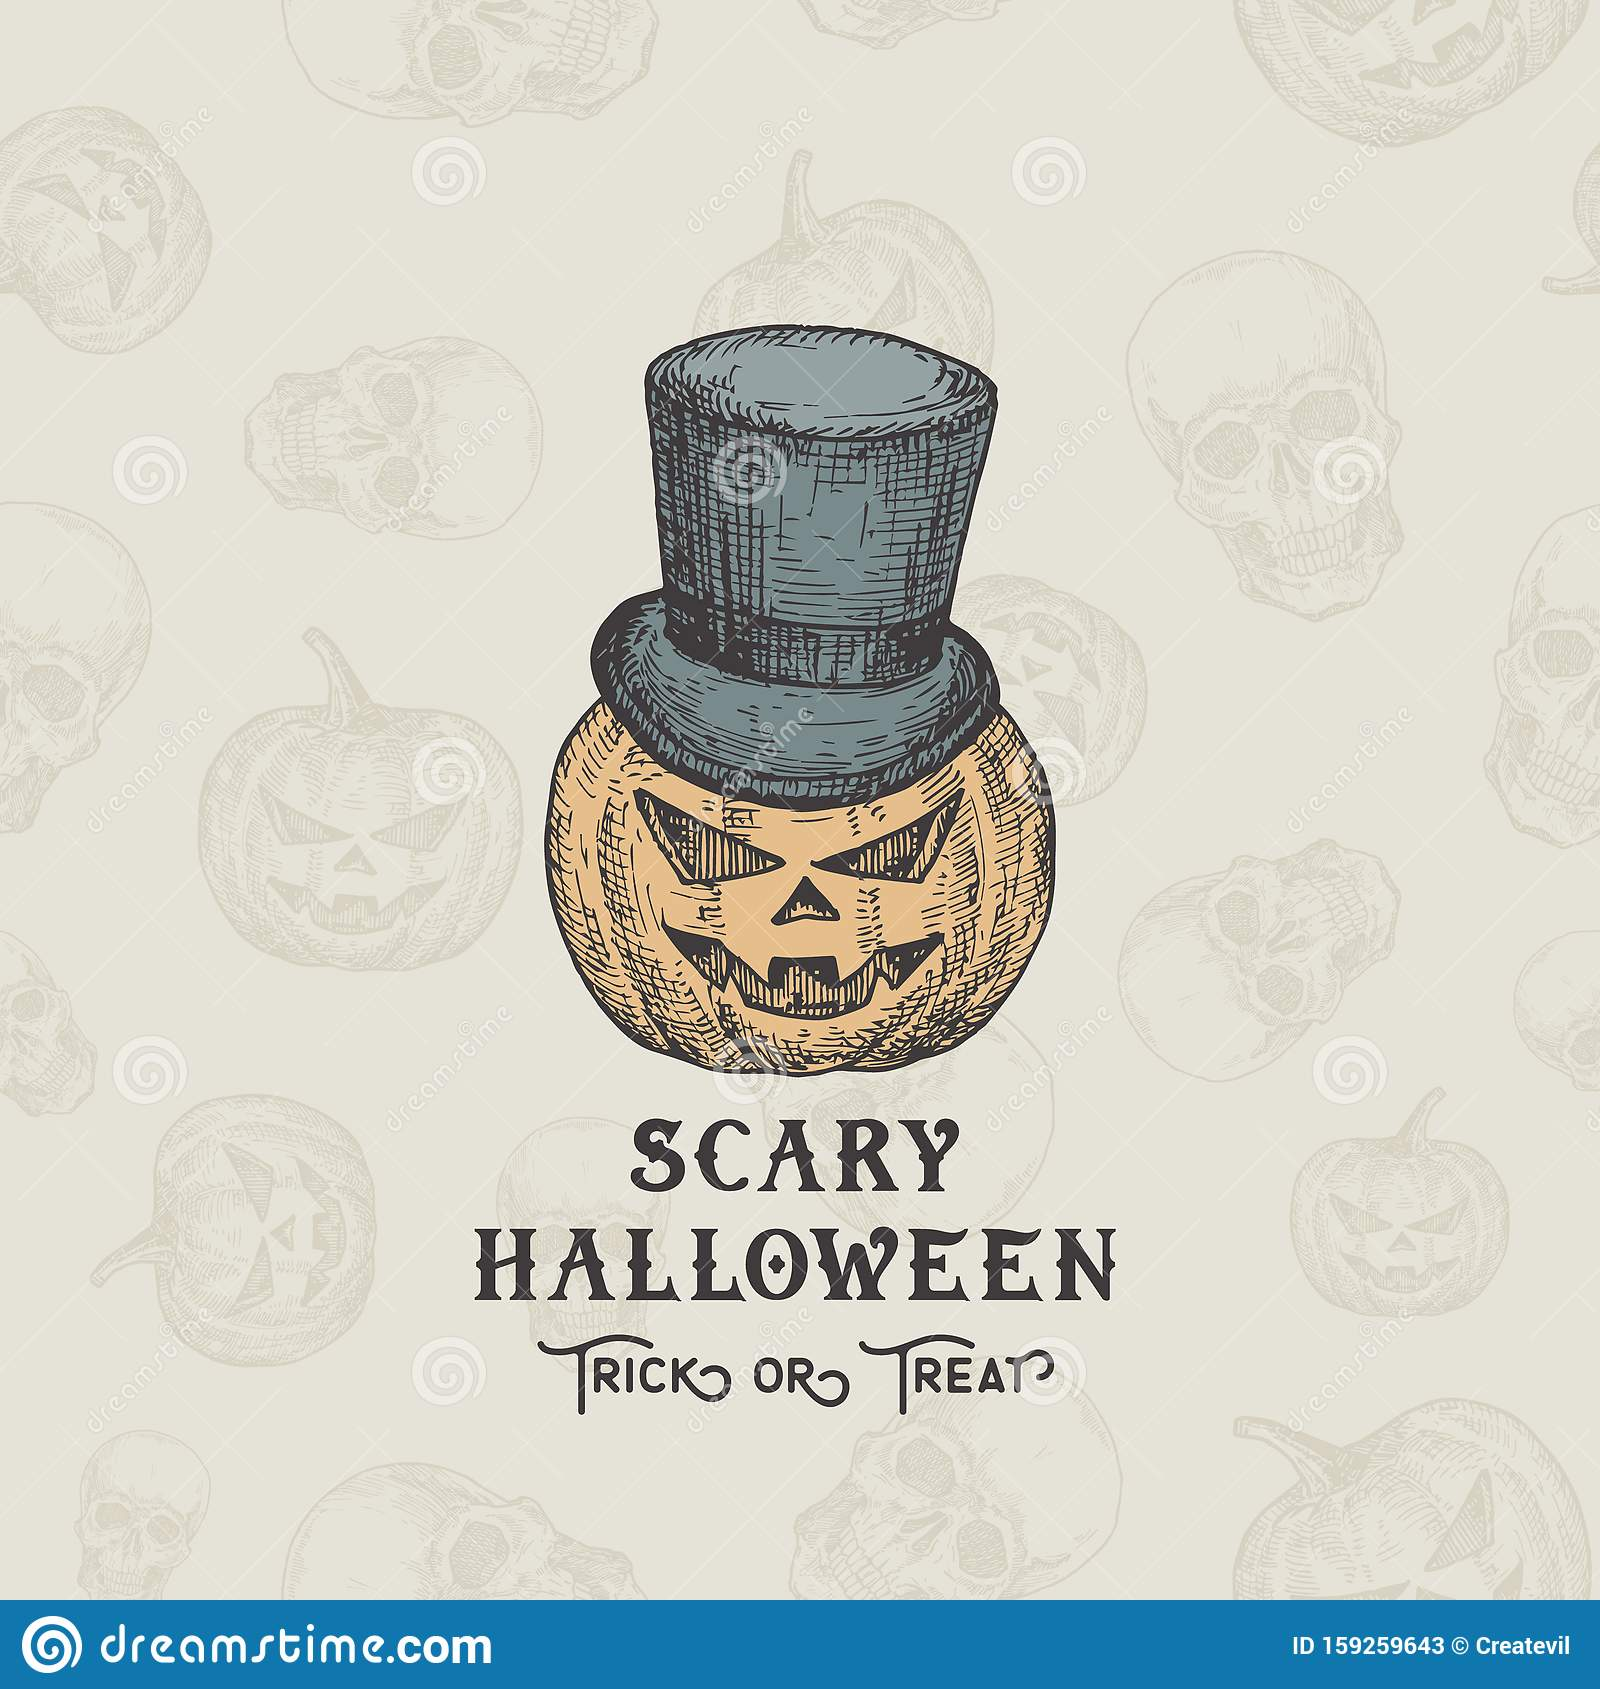 Happy HalloweenTrick or Treat Vector Background or Card Template. Hand Drawn Pumpkin Head in a Cylinder Hat Sketch